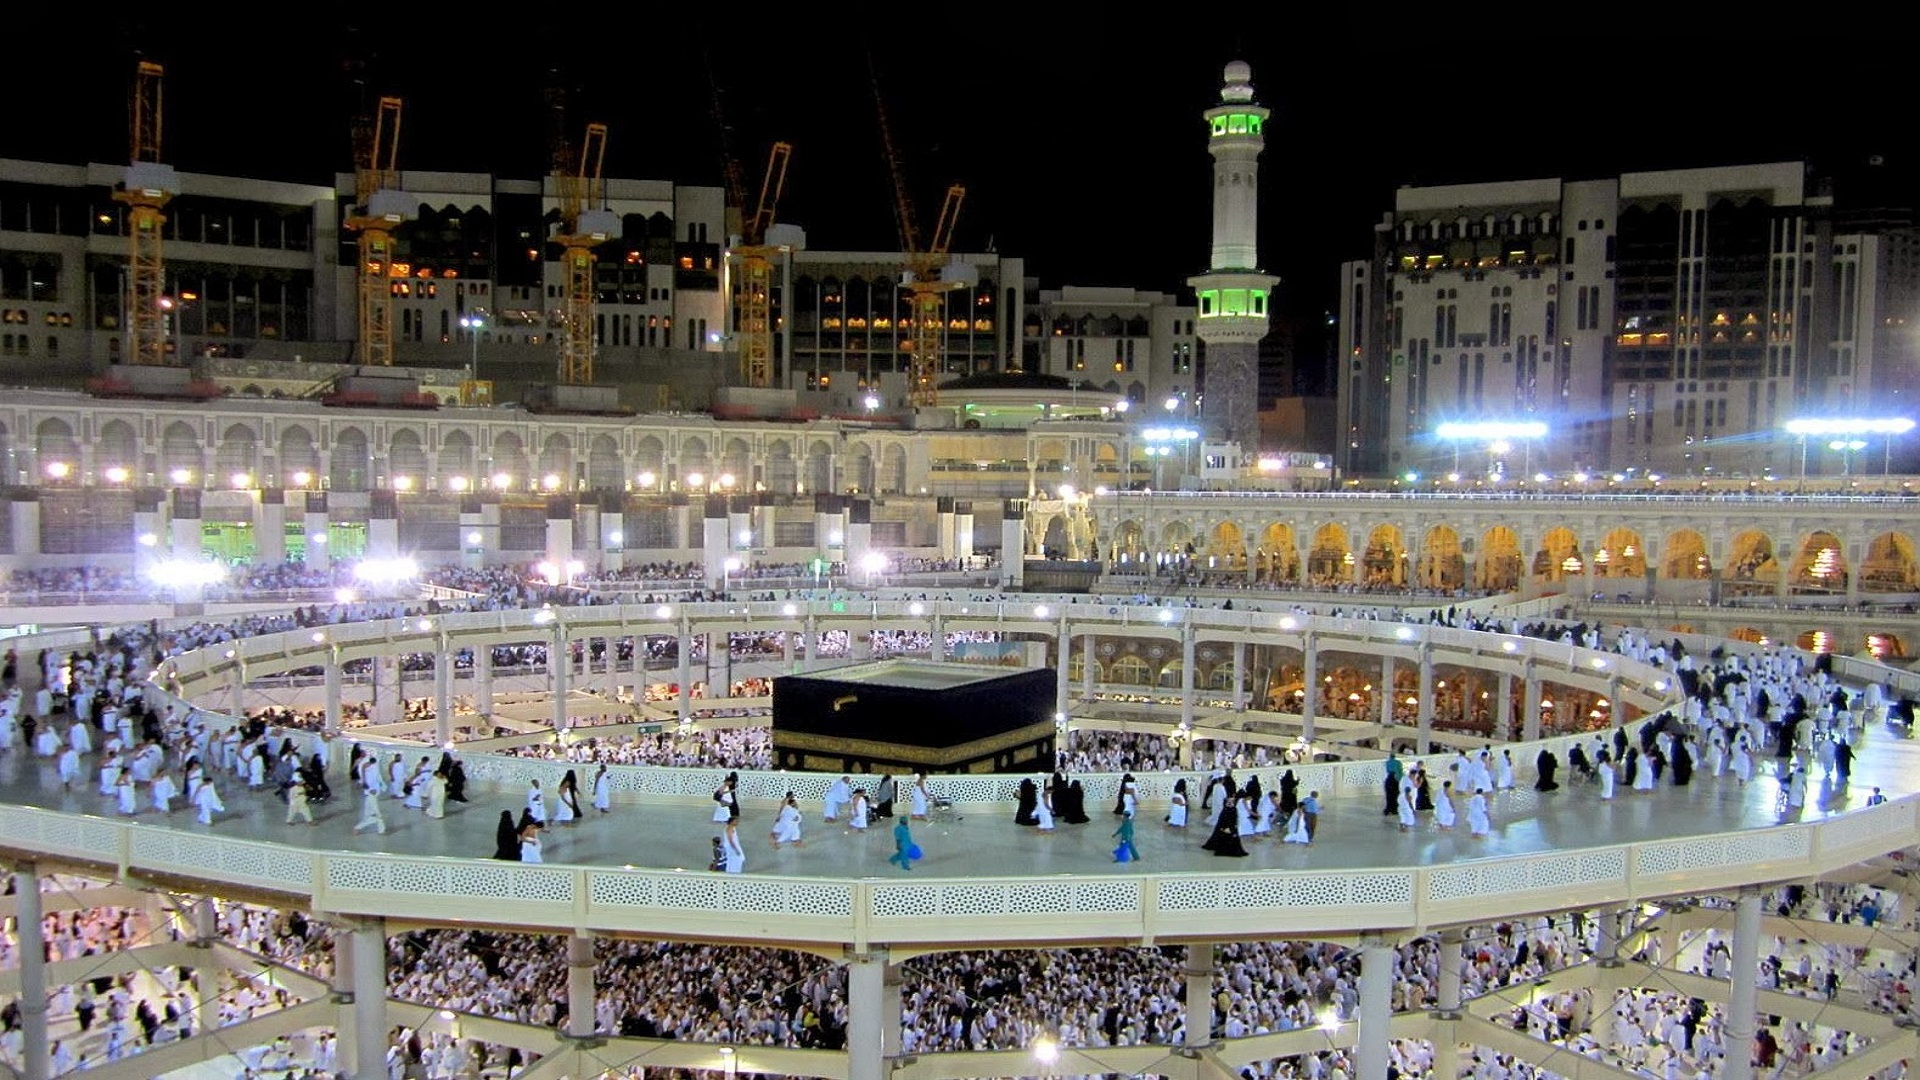 Chocolate Day Hd Wallpaper Holy Kaba Hajj Achisite Com